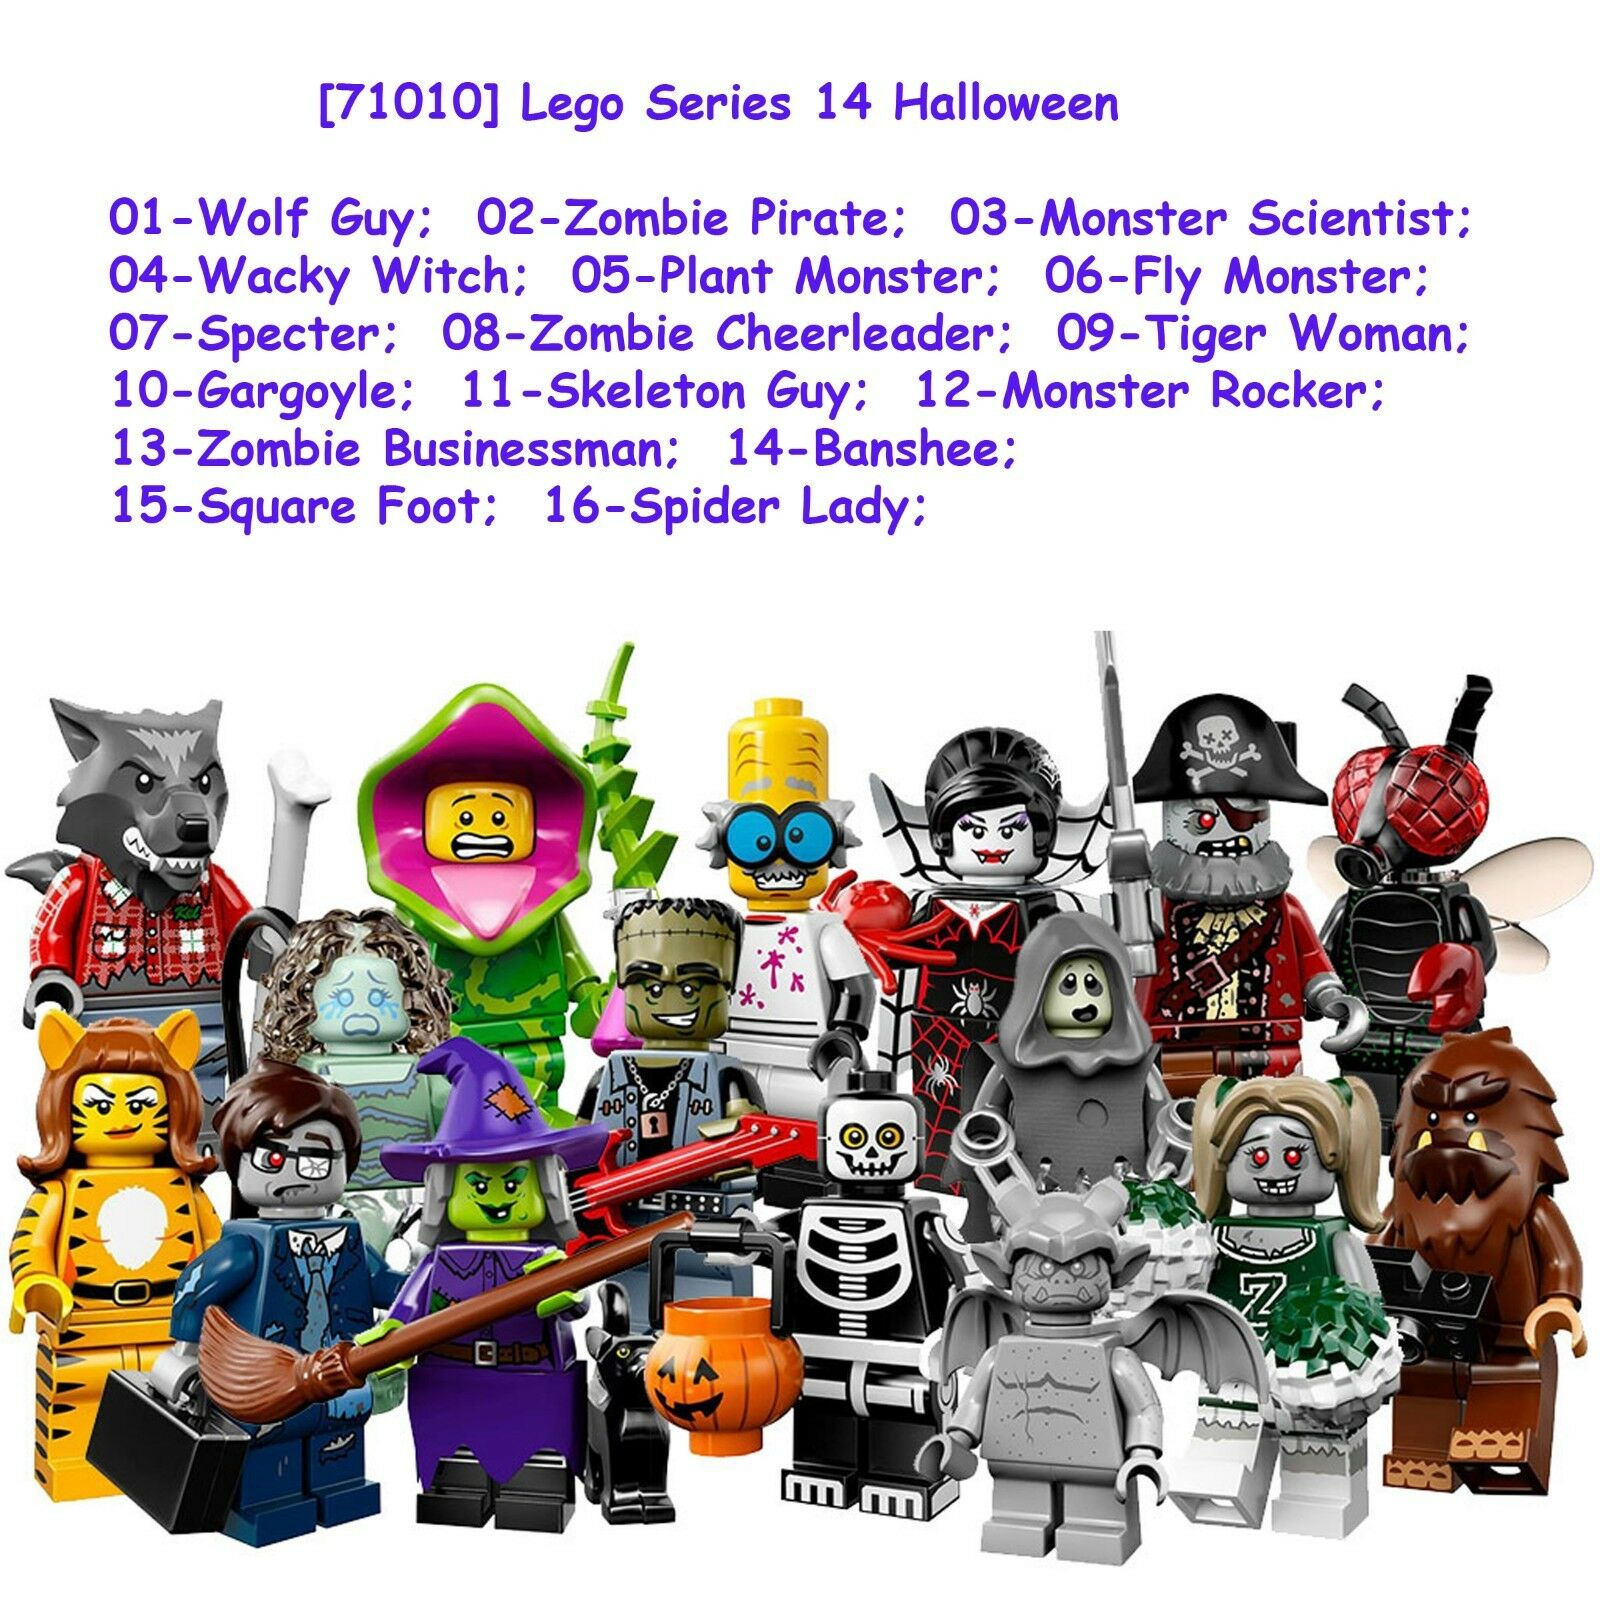 Lego Minifigures - all 16 Complete Set series 14 Halloween NEW Collectible 71010